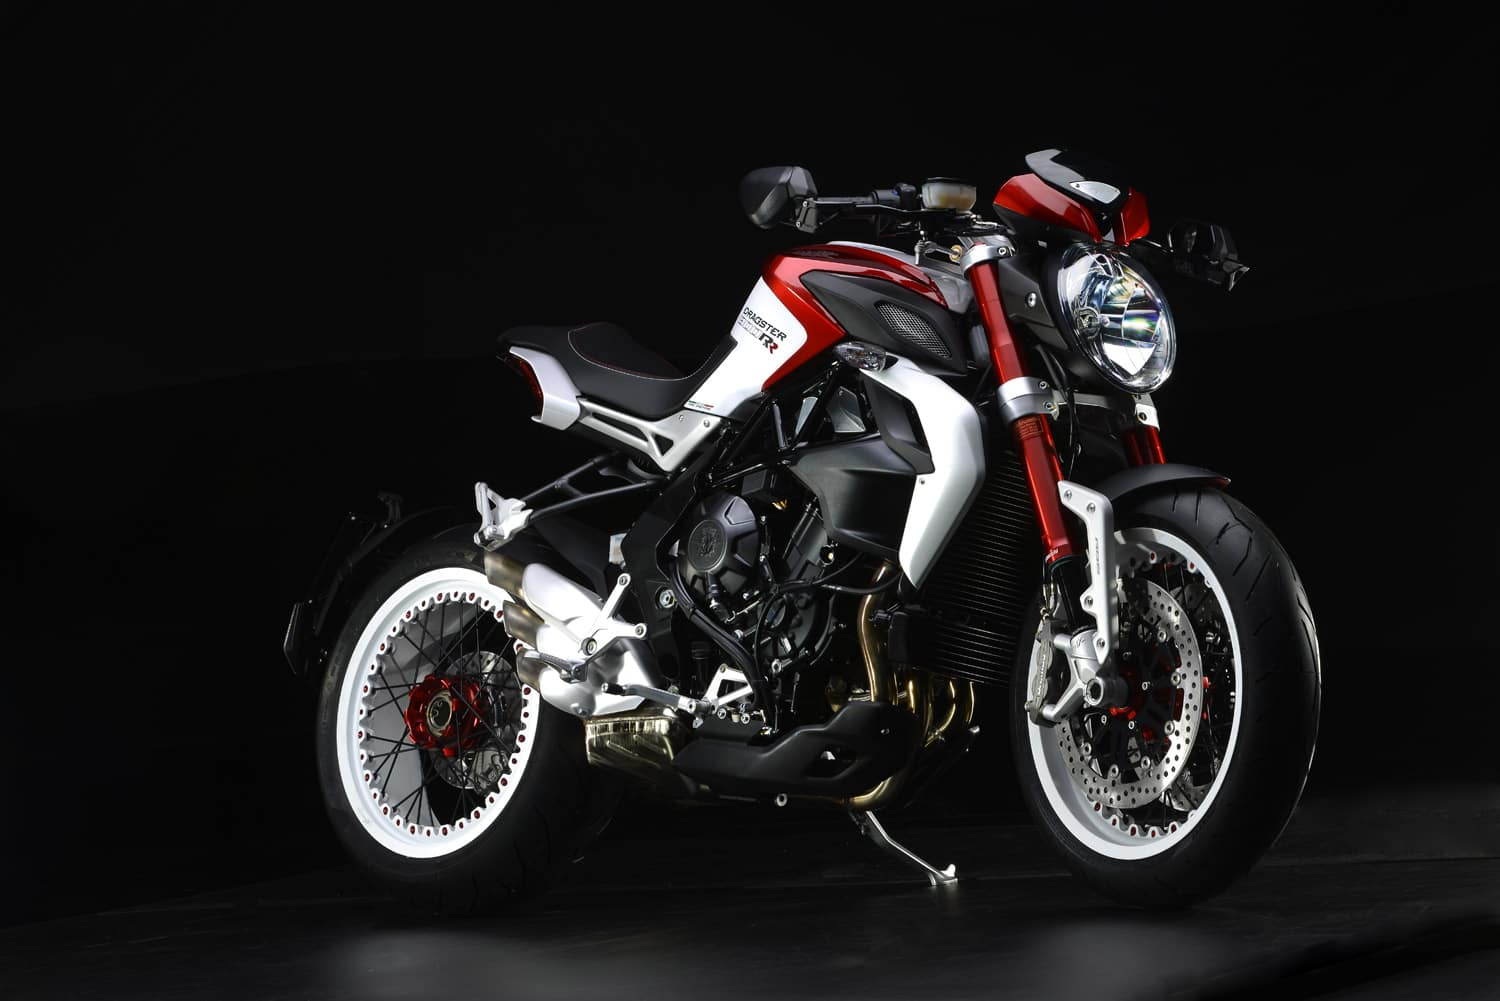 MV Agusta Turismo Veloce, Brutale Dragster India Launch Soon